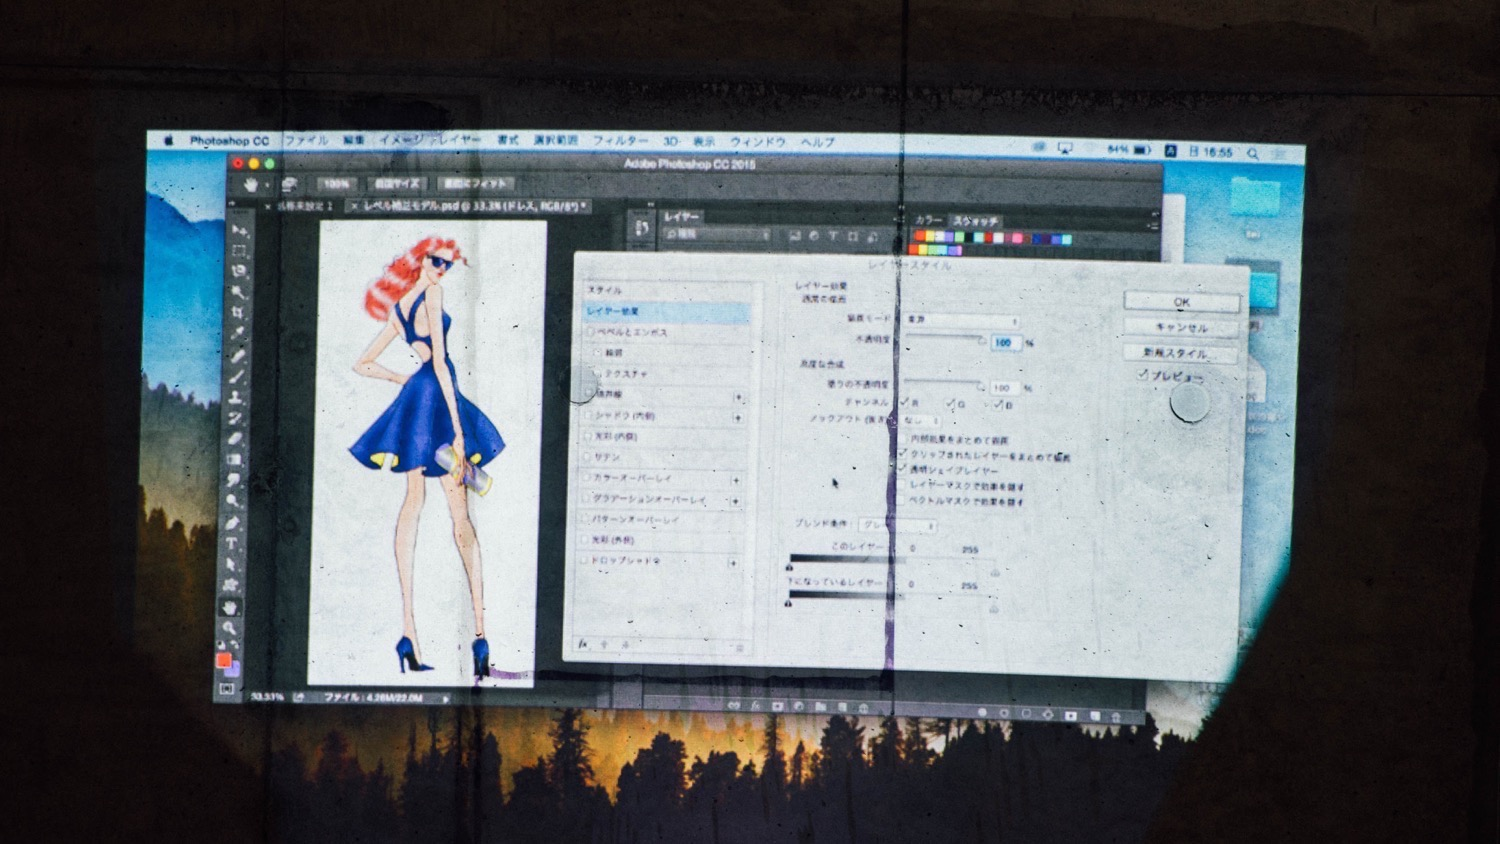 Tokyo fashion technology lab report 1 59